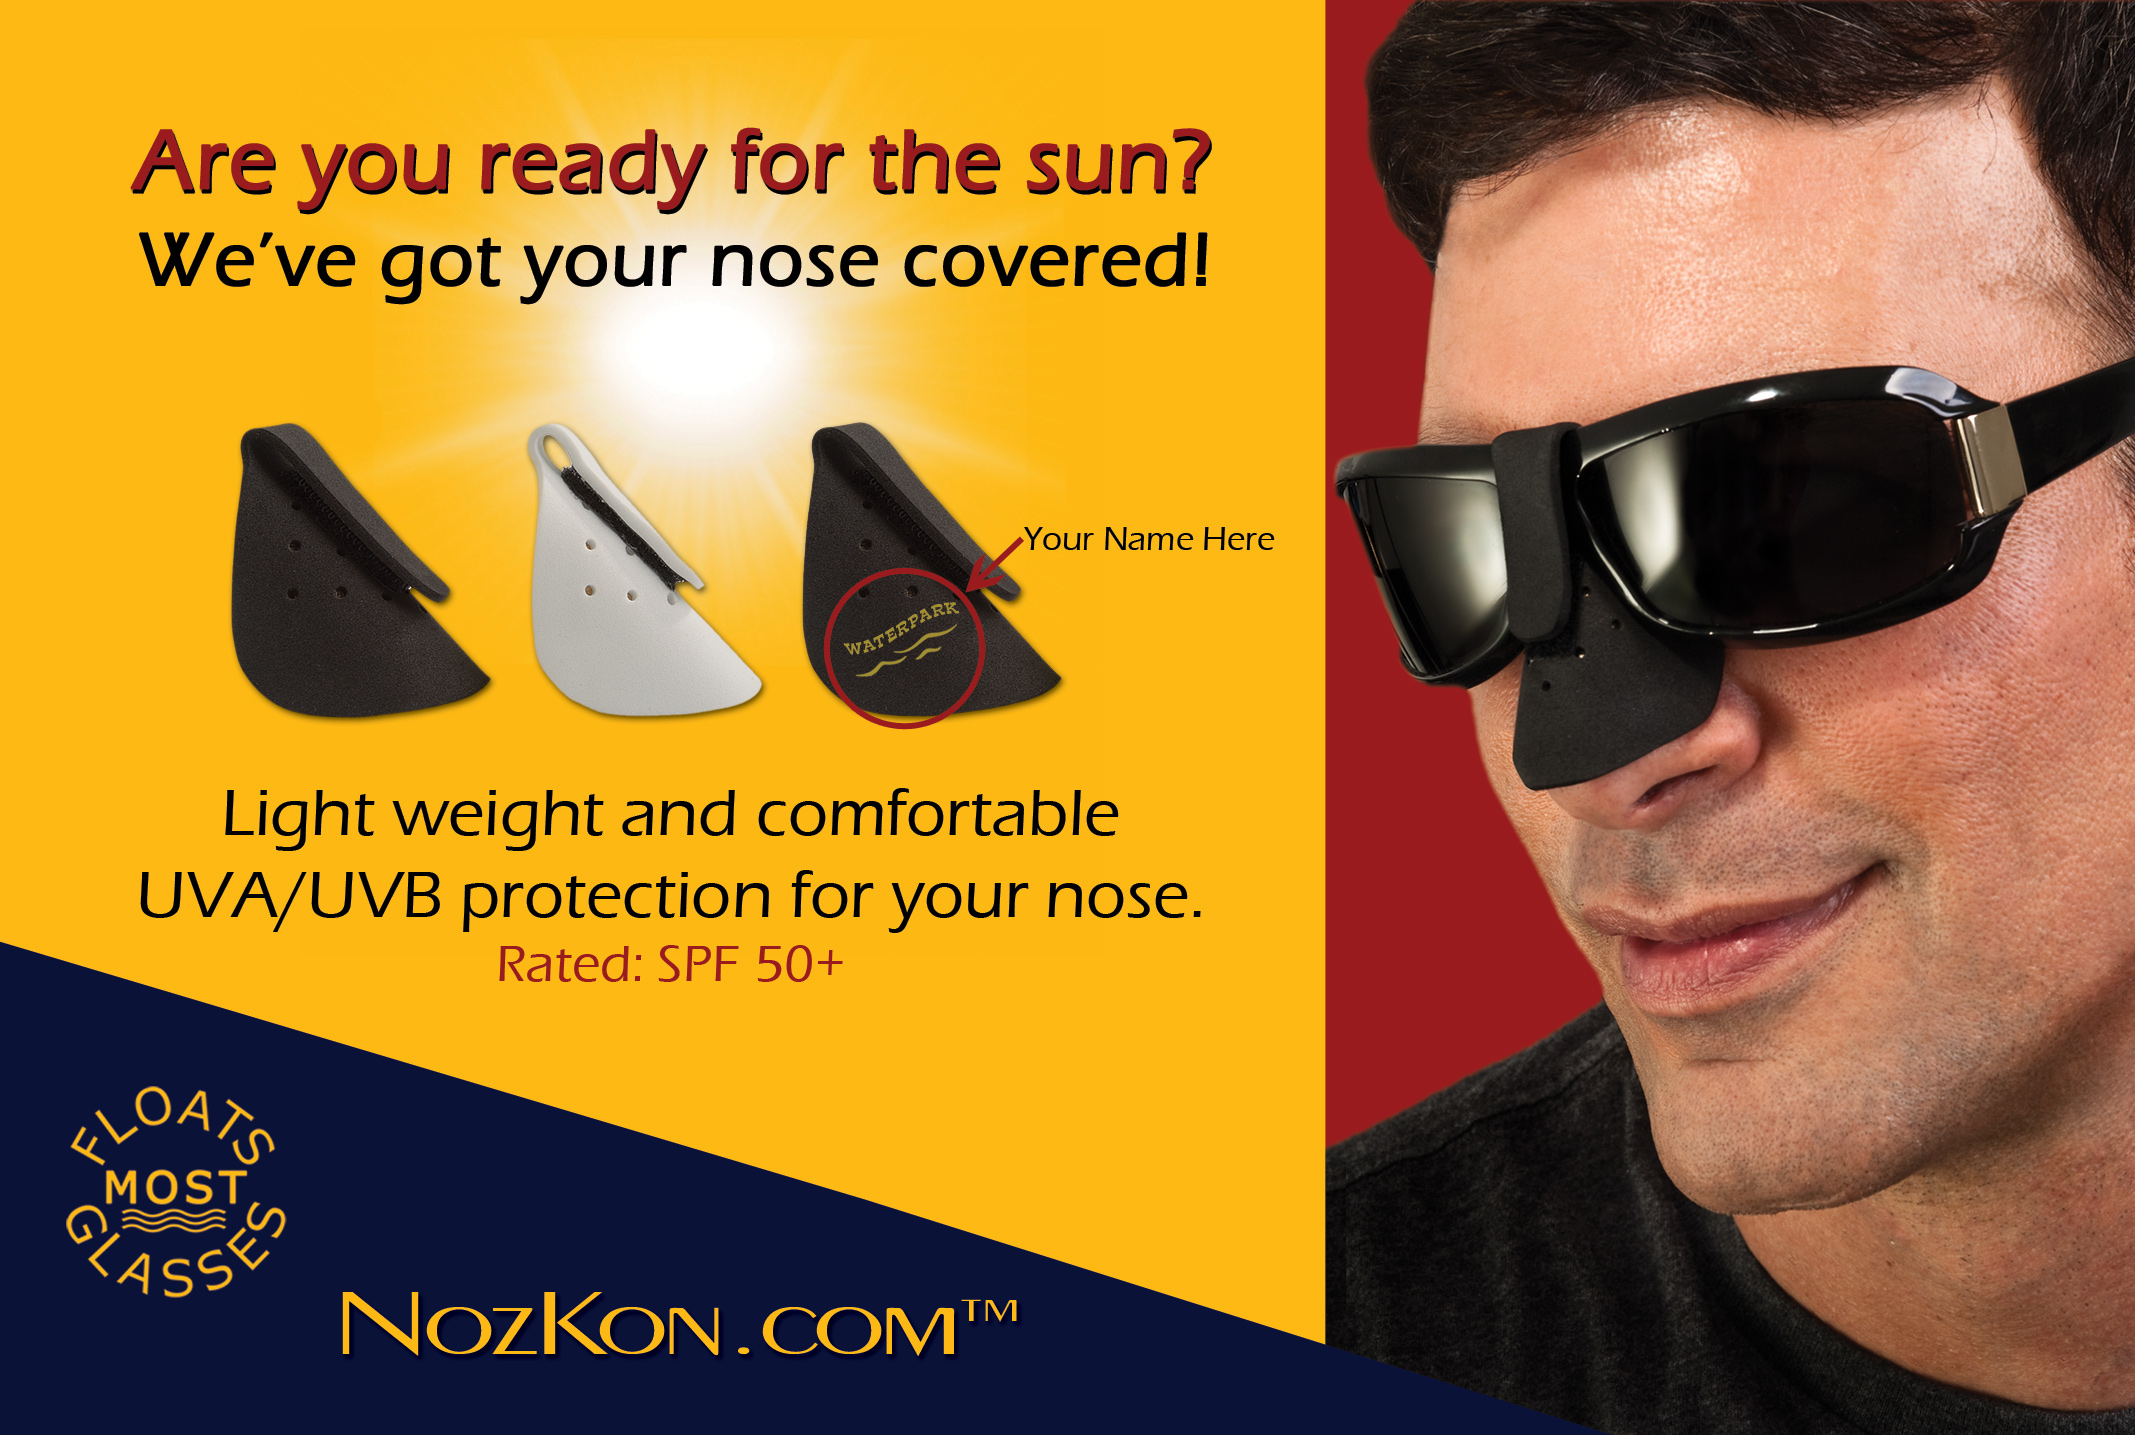 Nozkon Com The Newest Technology In Sun Protection For